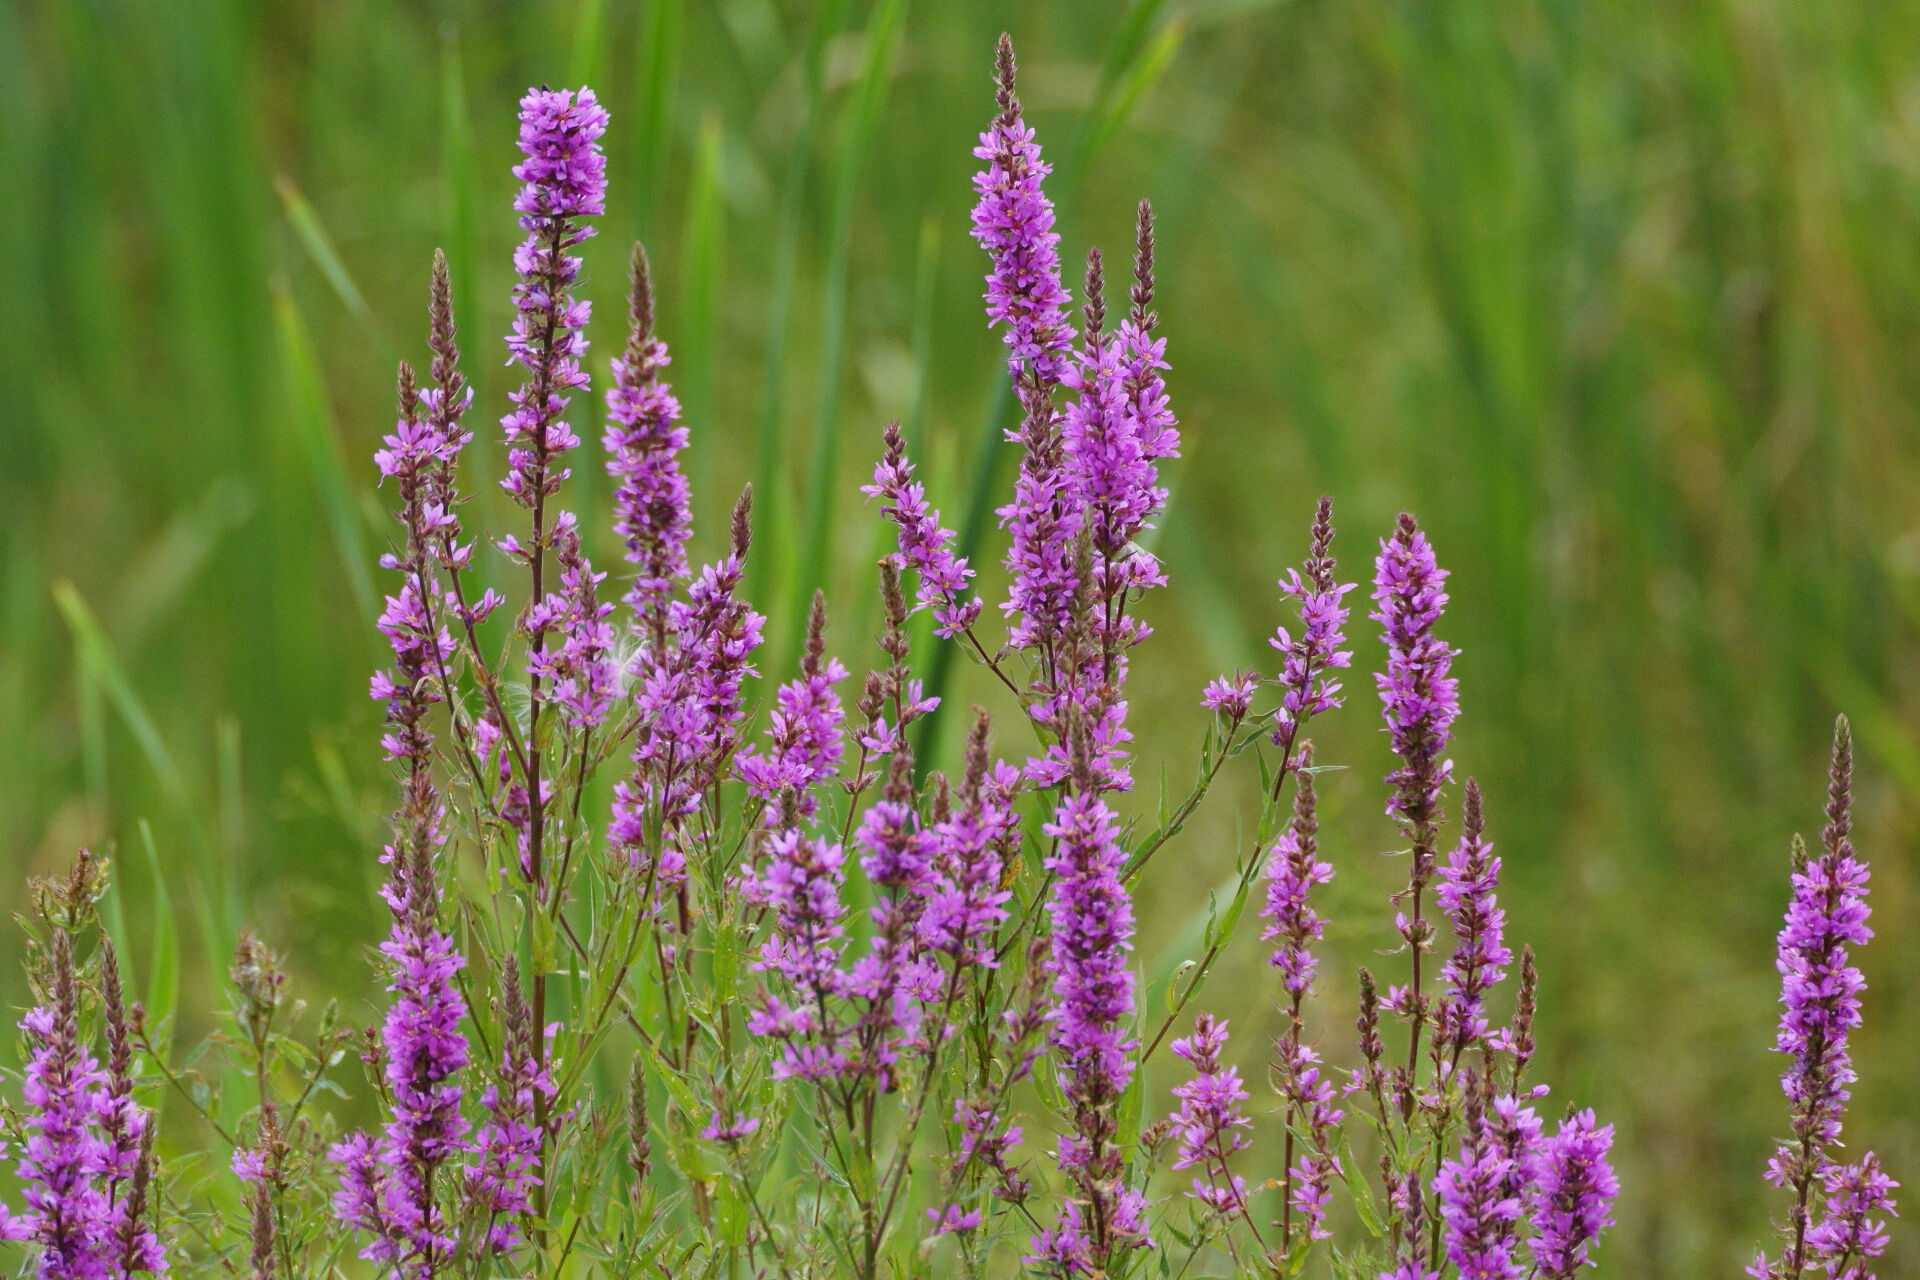 Purple loosestrife is an invasive wetland plant